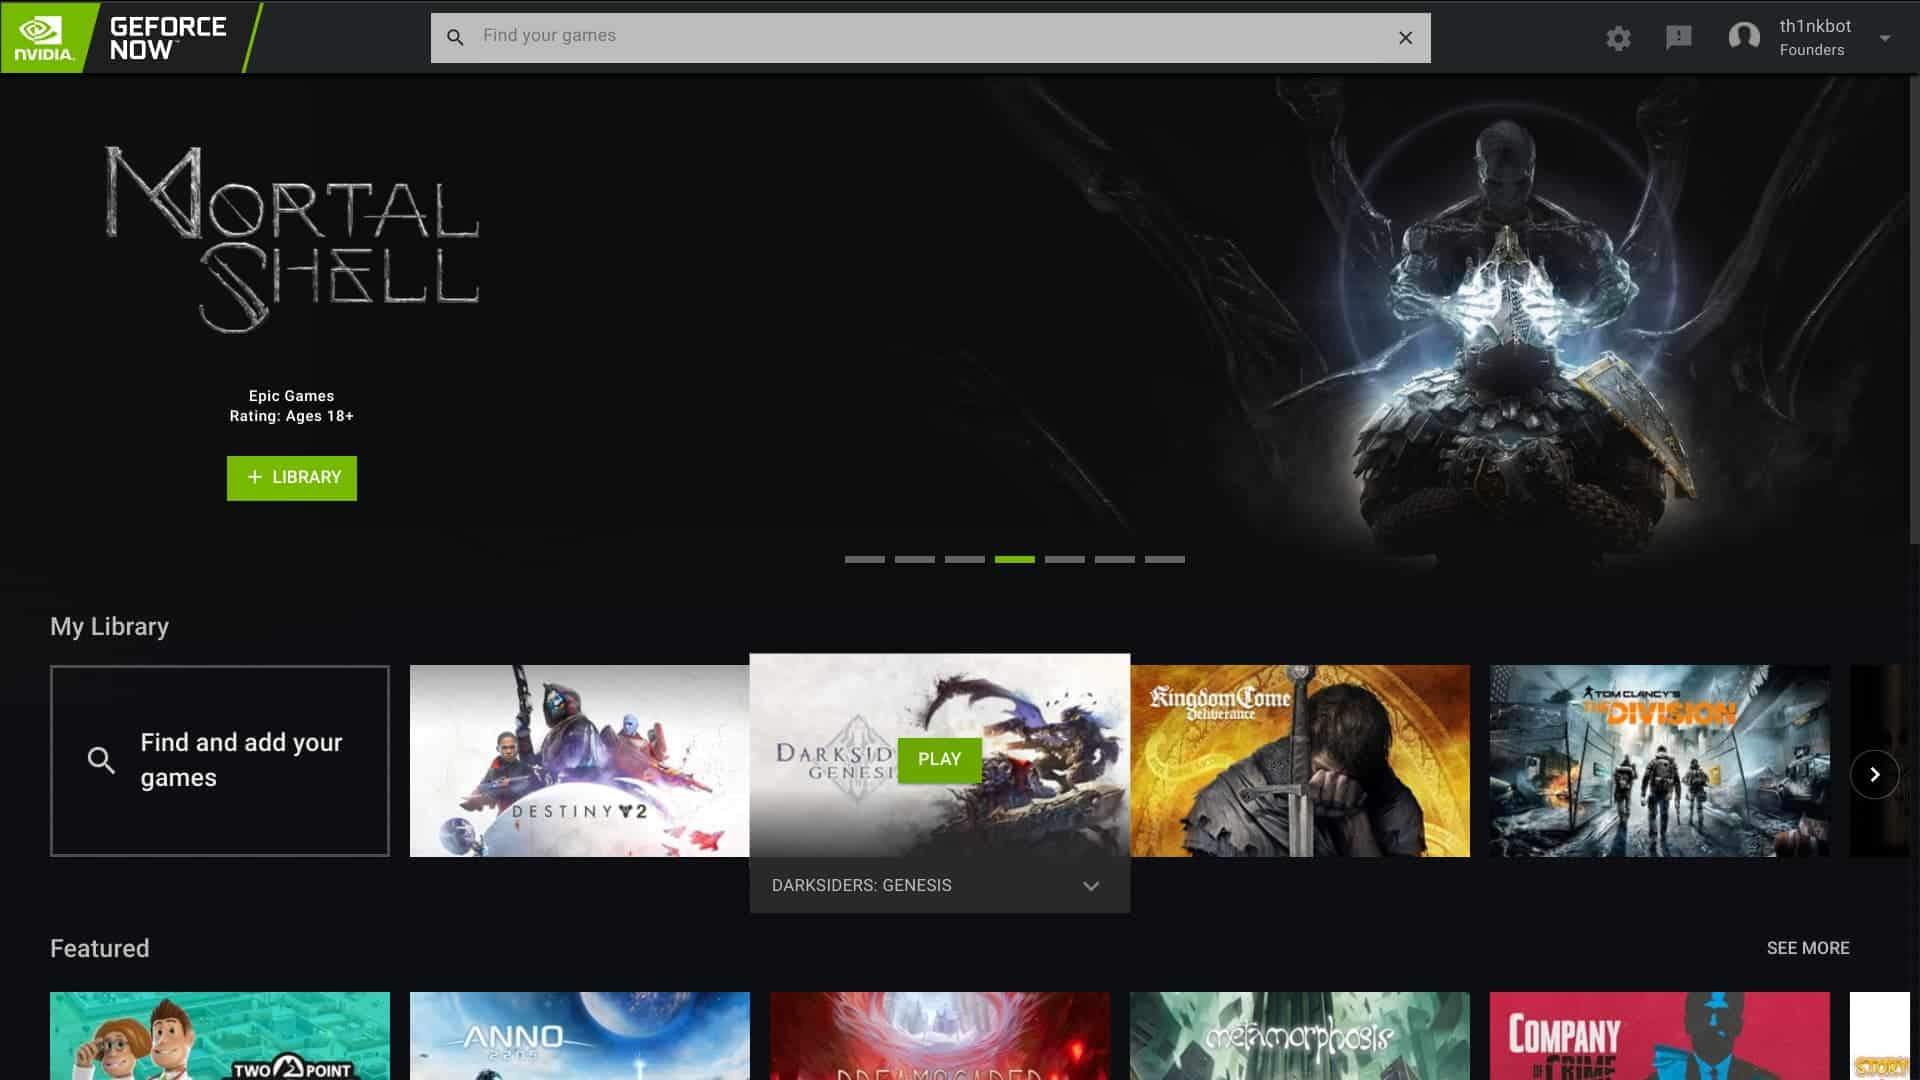 How To Get Started With GeForce NOW Chromebooks 1